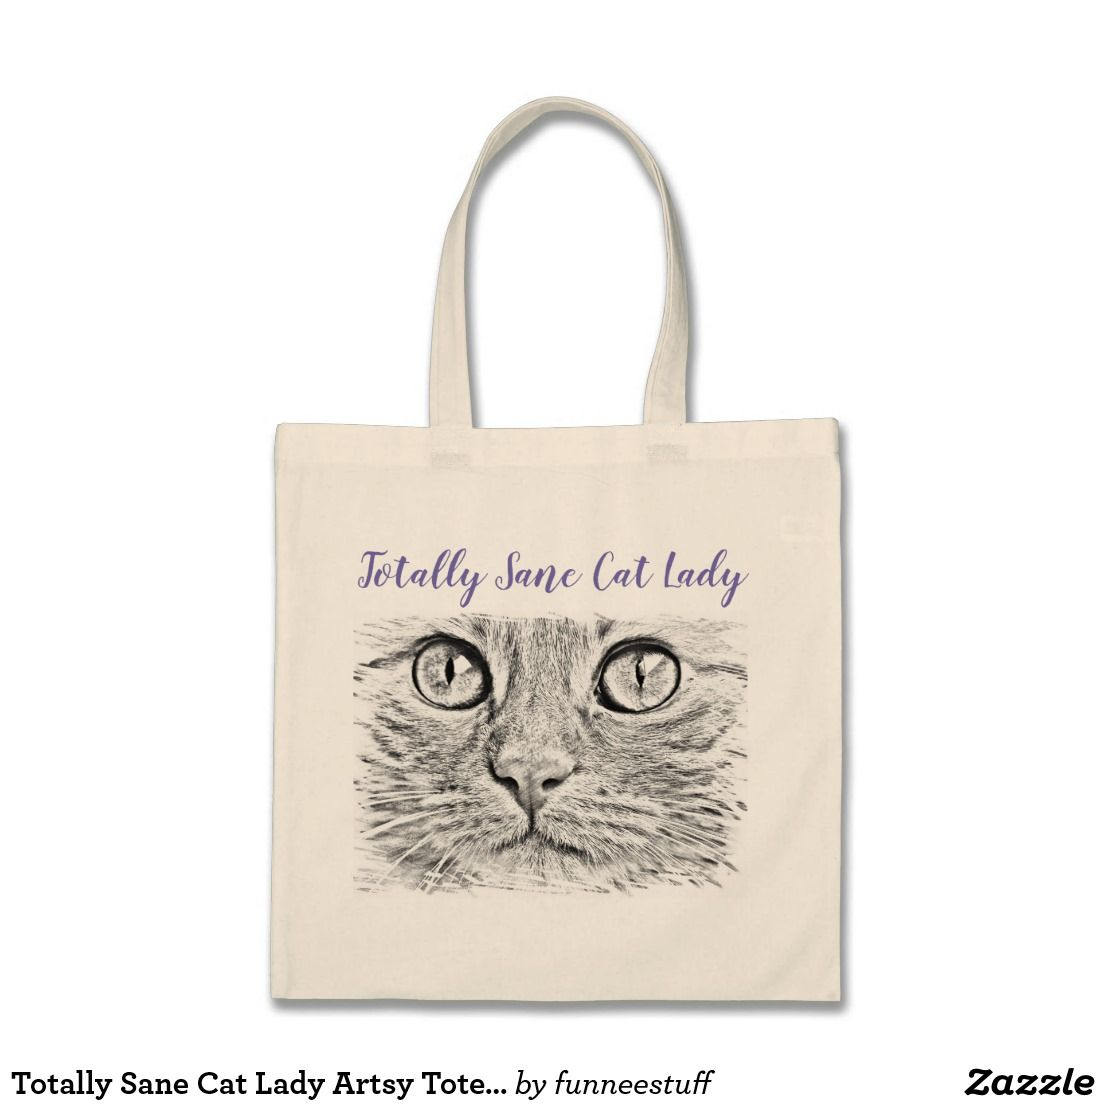 6470c4bed99d Totally Sane Cat Lady Artsy Tote Bag